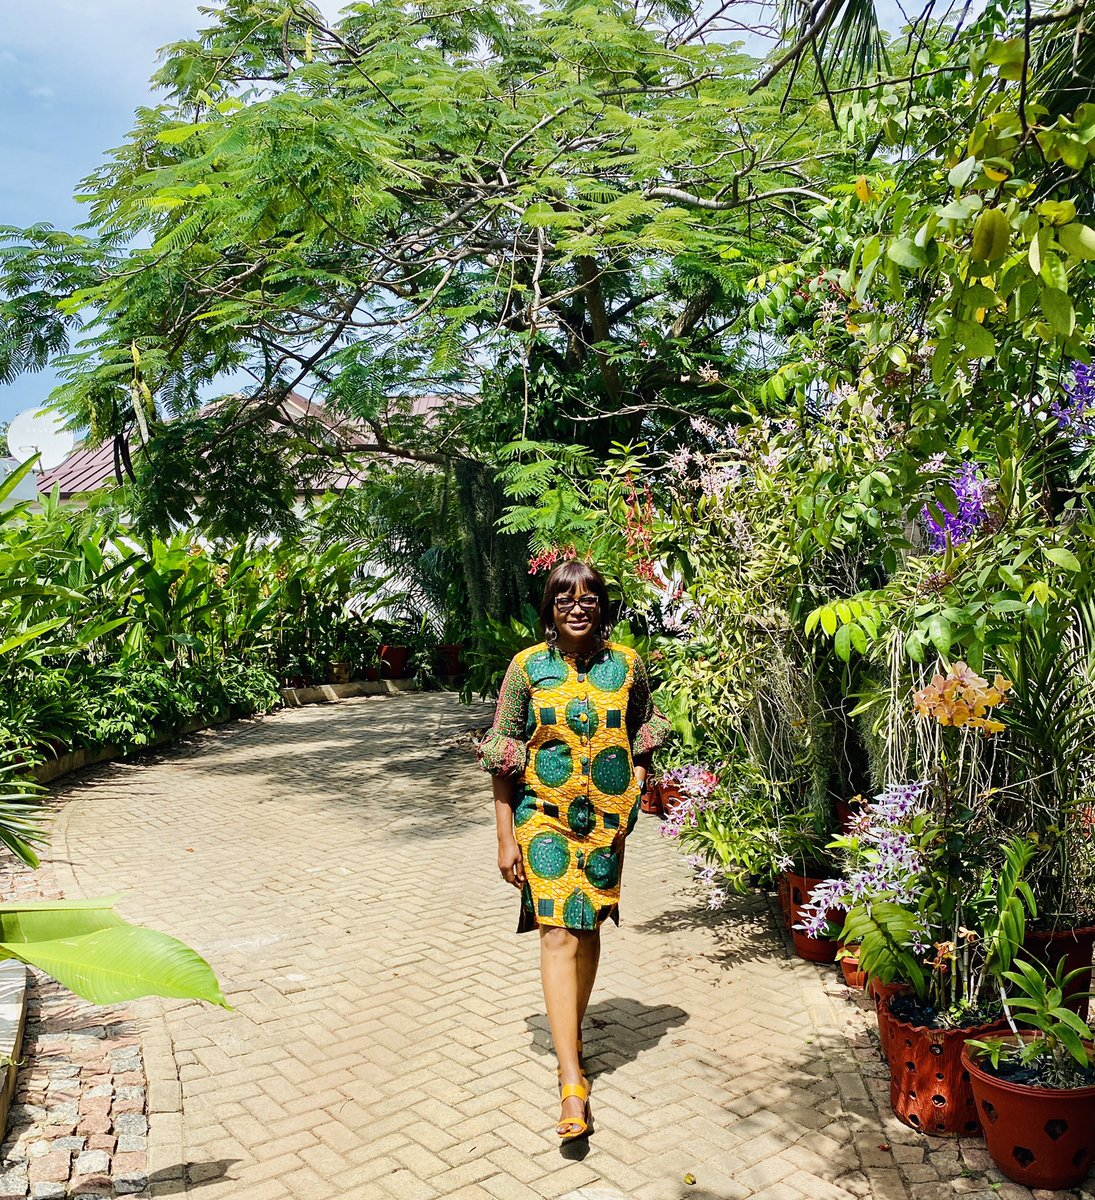 Where does your life path lead you? I pray to pleasant, green and fruitful pastures. But most importantly to a life of purpose. #lifebydesign I can make your outdoor living space just as awesome! #gardendesign #landscaping #orchidgarden #addvalue #lilygraceinteriors https://t.co/J58fslLS18